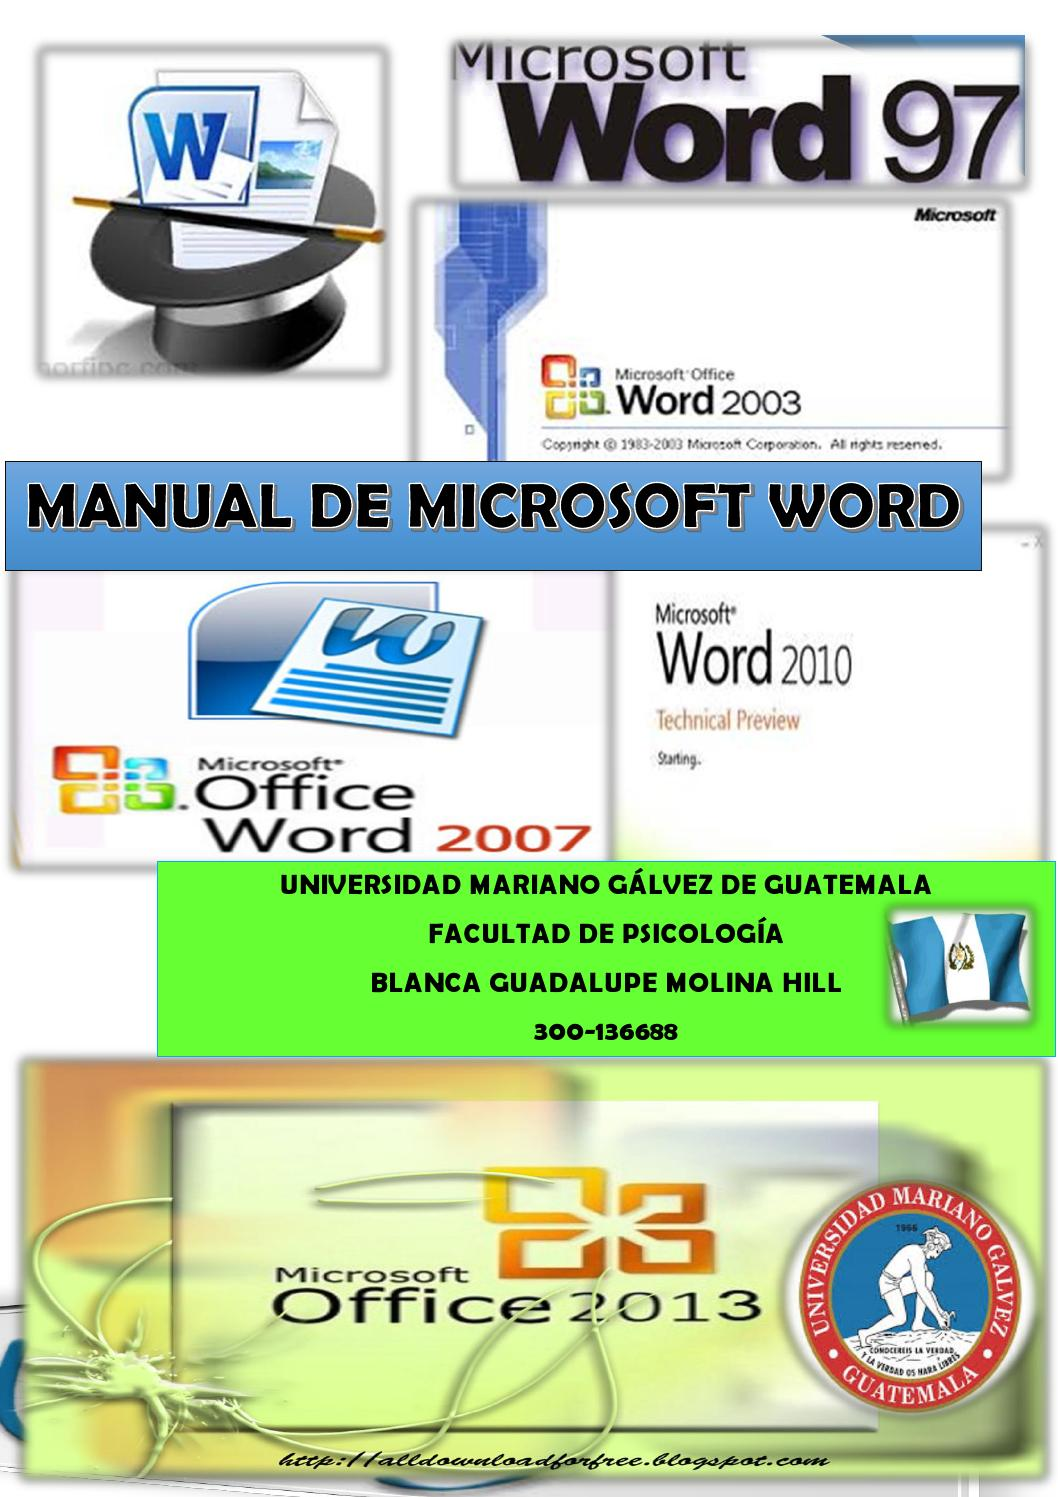 Manual de word 2013 umg by Guadalupe Molina - issuu